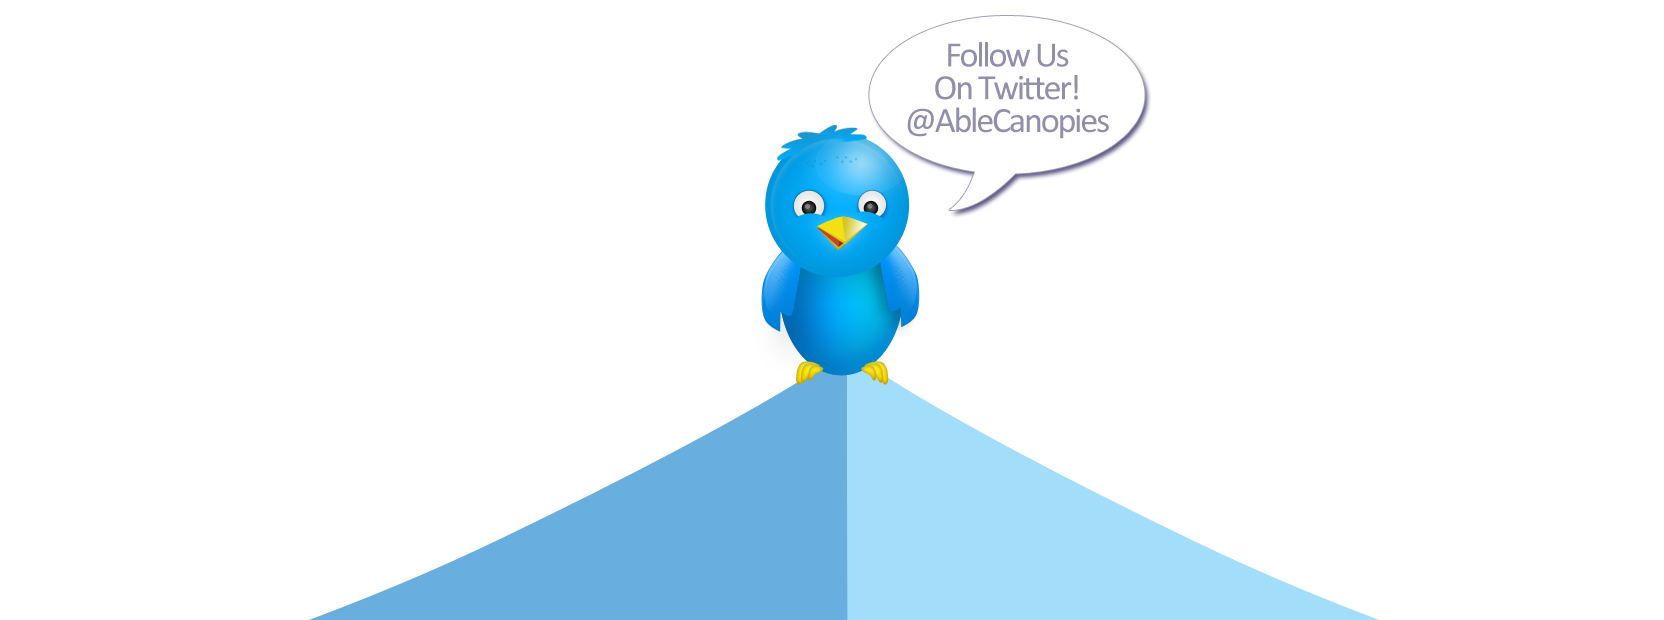 Follow us on twitter @ablecanopies